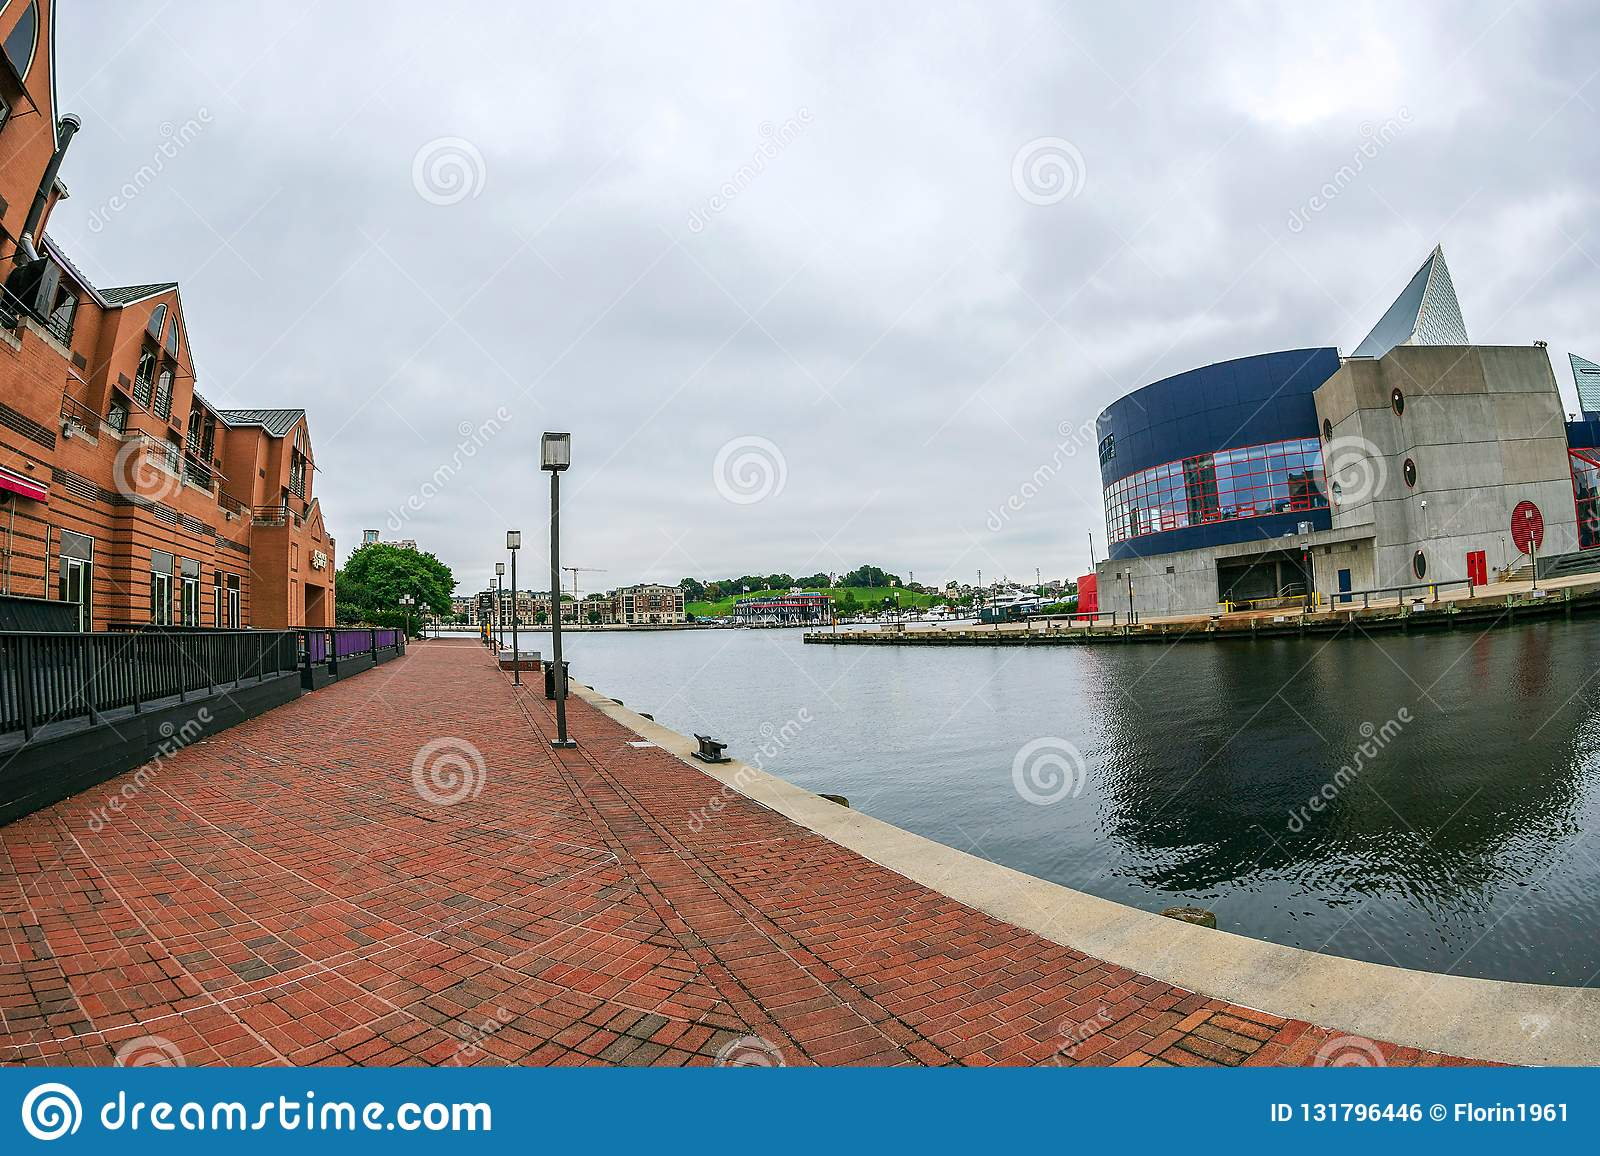 The Waterfront Promenade at the Inner Harbor with large angle view of Potapsco river. National